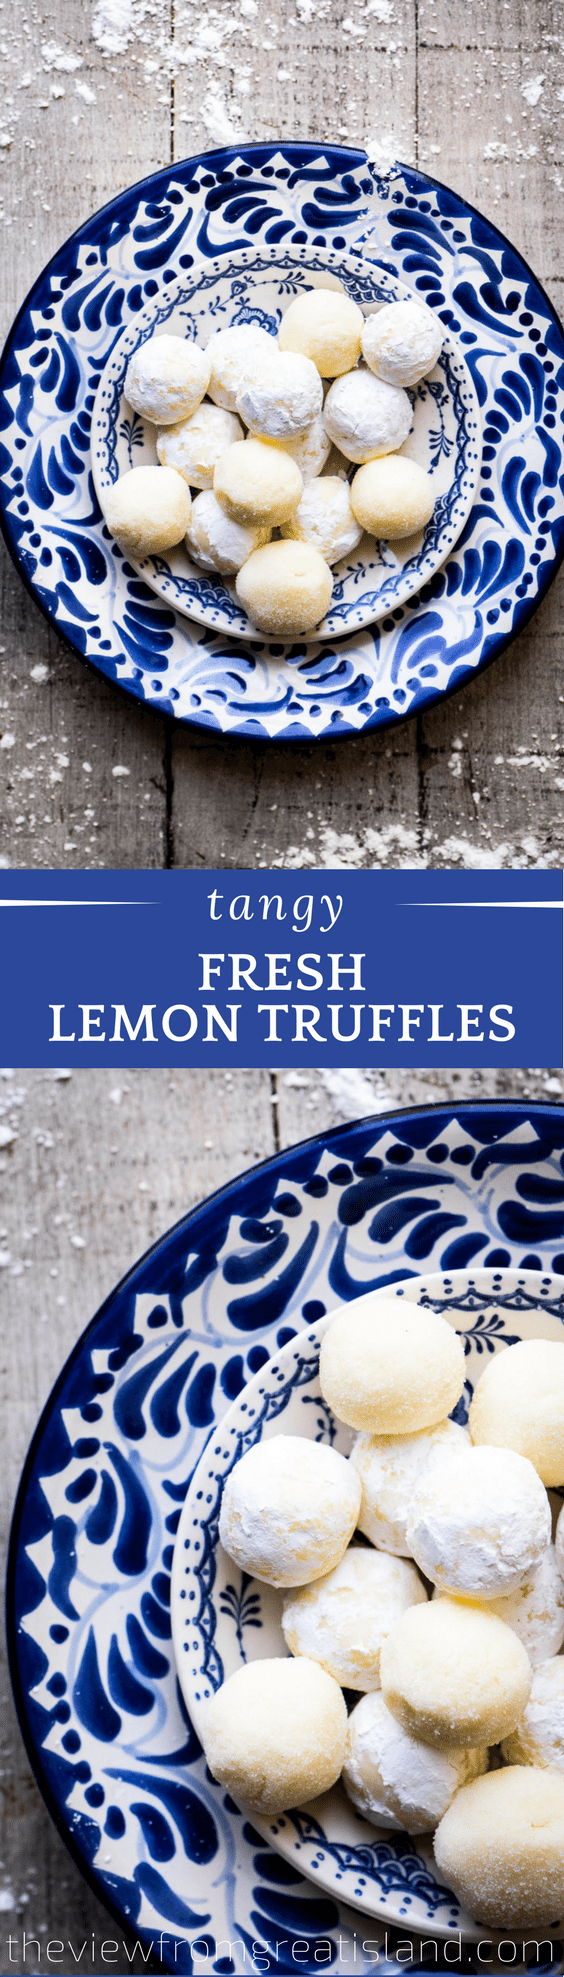 These Fresh Lemon Truffles are creamy confections with a bold citrus flavor.  Rolled in sugar or dipped in dark chocolate ~ #CANDY #TRUFFLES #LEMON #WHITECHOCOLATE #HOLIDAYCANDY #DESSERT #CITRUS #LEMONCANDY #GANACHE #WHITECHOCOLATEGANACHE #LEMONDESSERT #CHRISTMAS #CHRISTMASCANDY #GLUTENFREEDESSERT